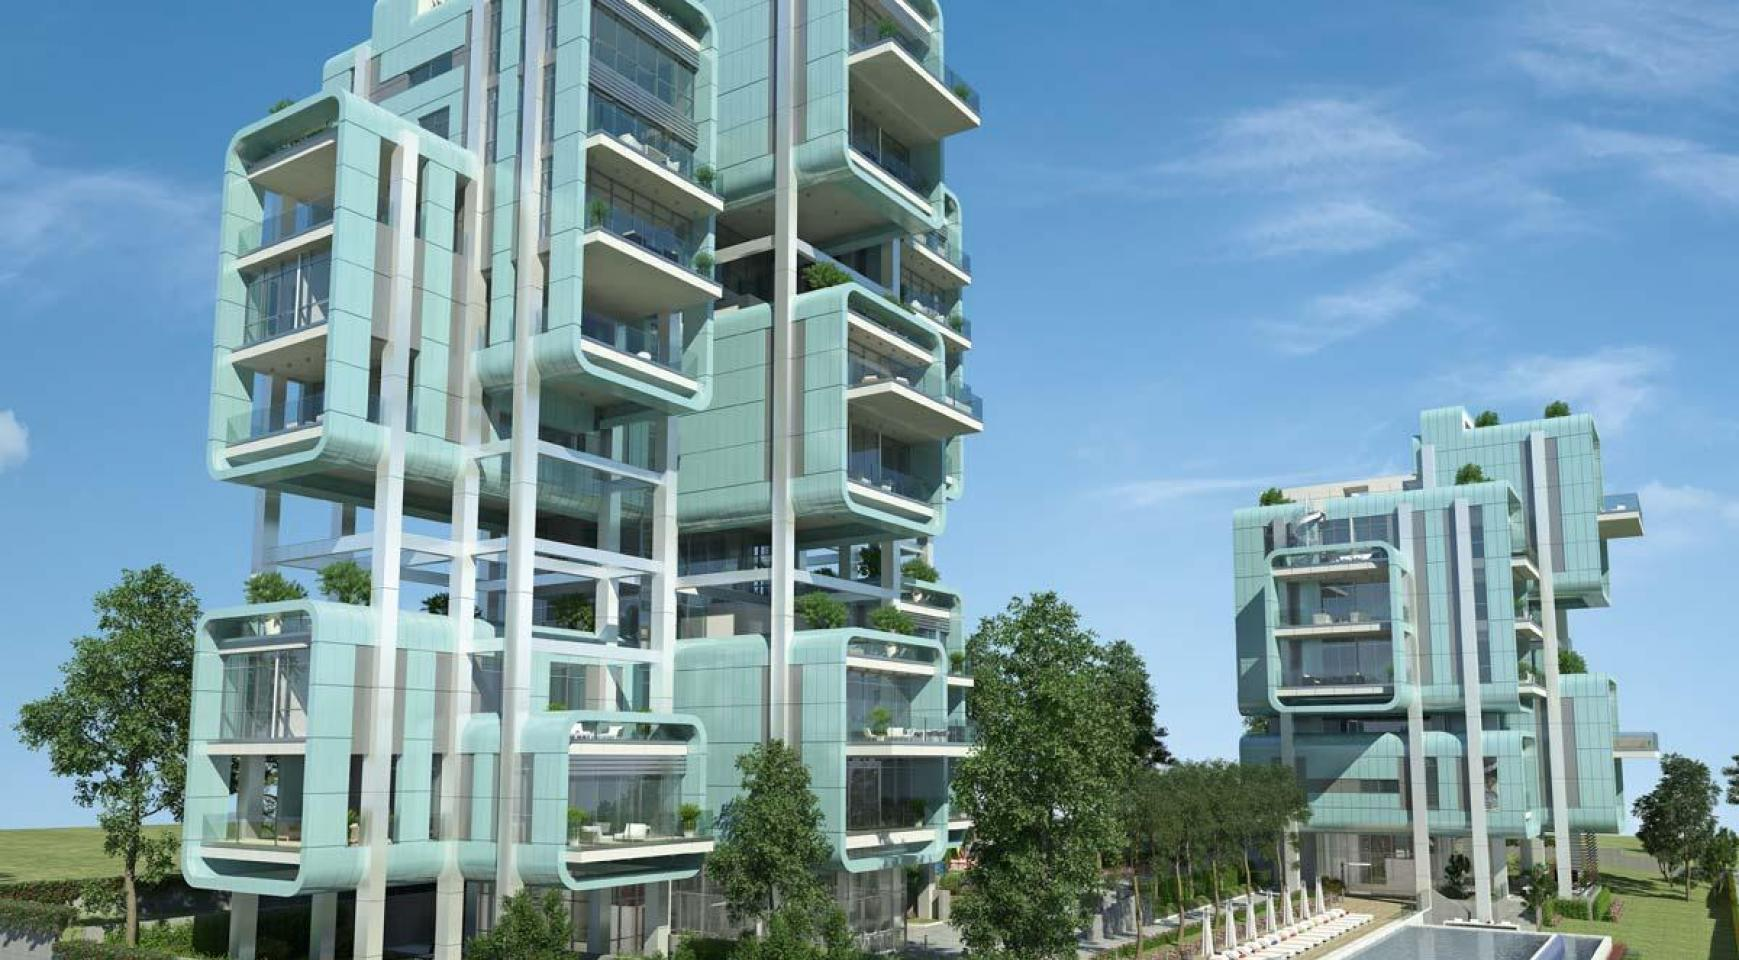 Elite 3 Bedroom Apartment within a New Complex near the Sea - 26